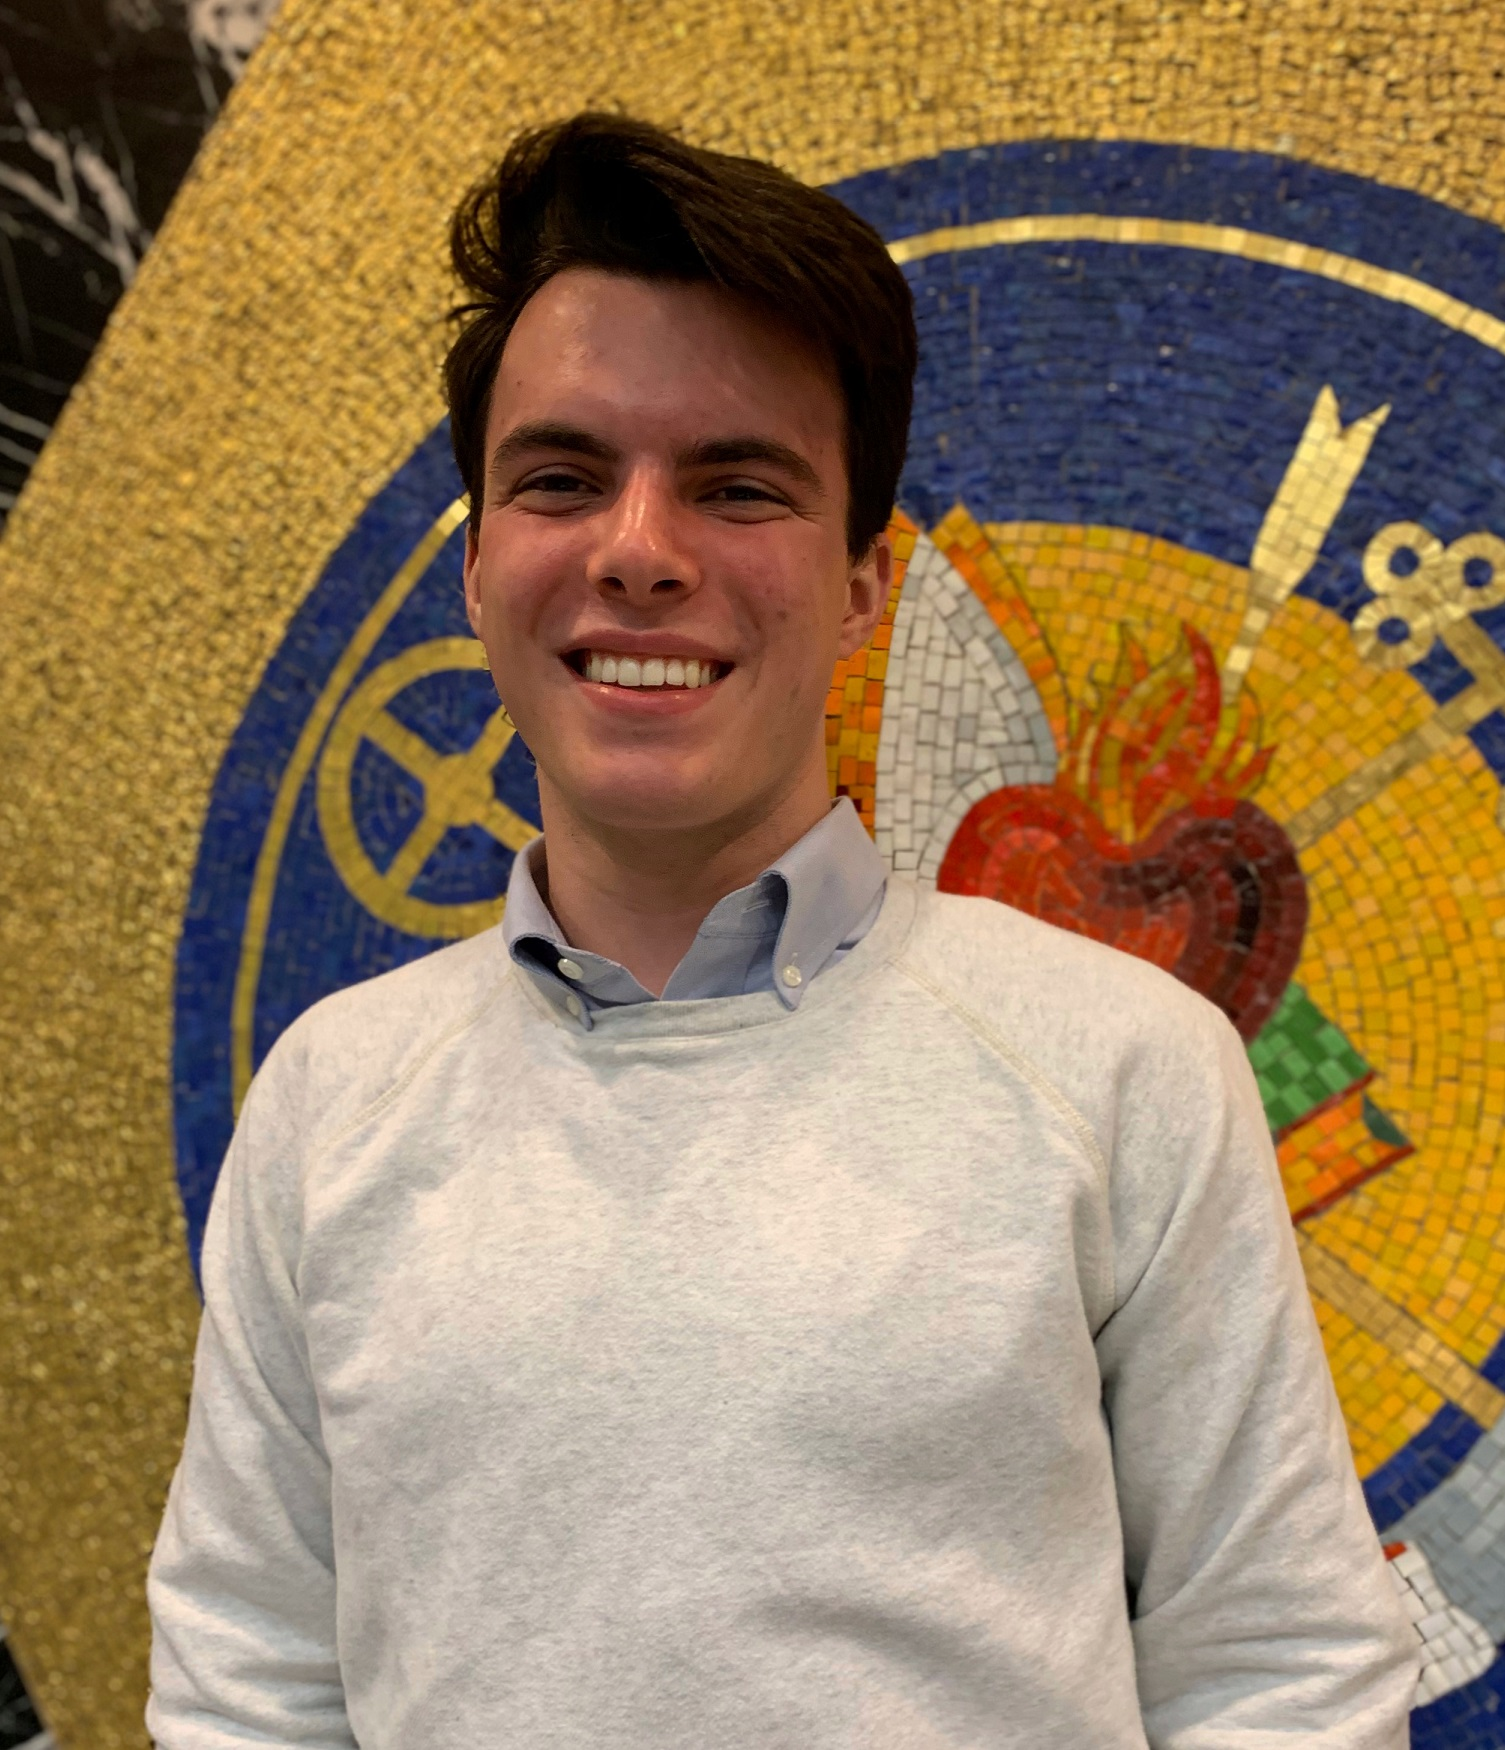 Villanova University student Ryan Weicht has received a place at a Fulbright Summer Institute